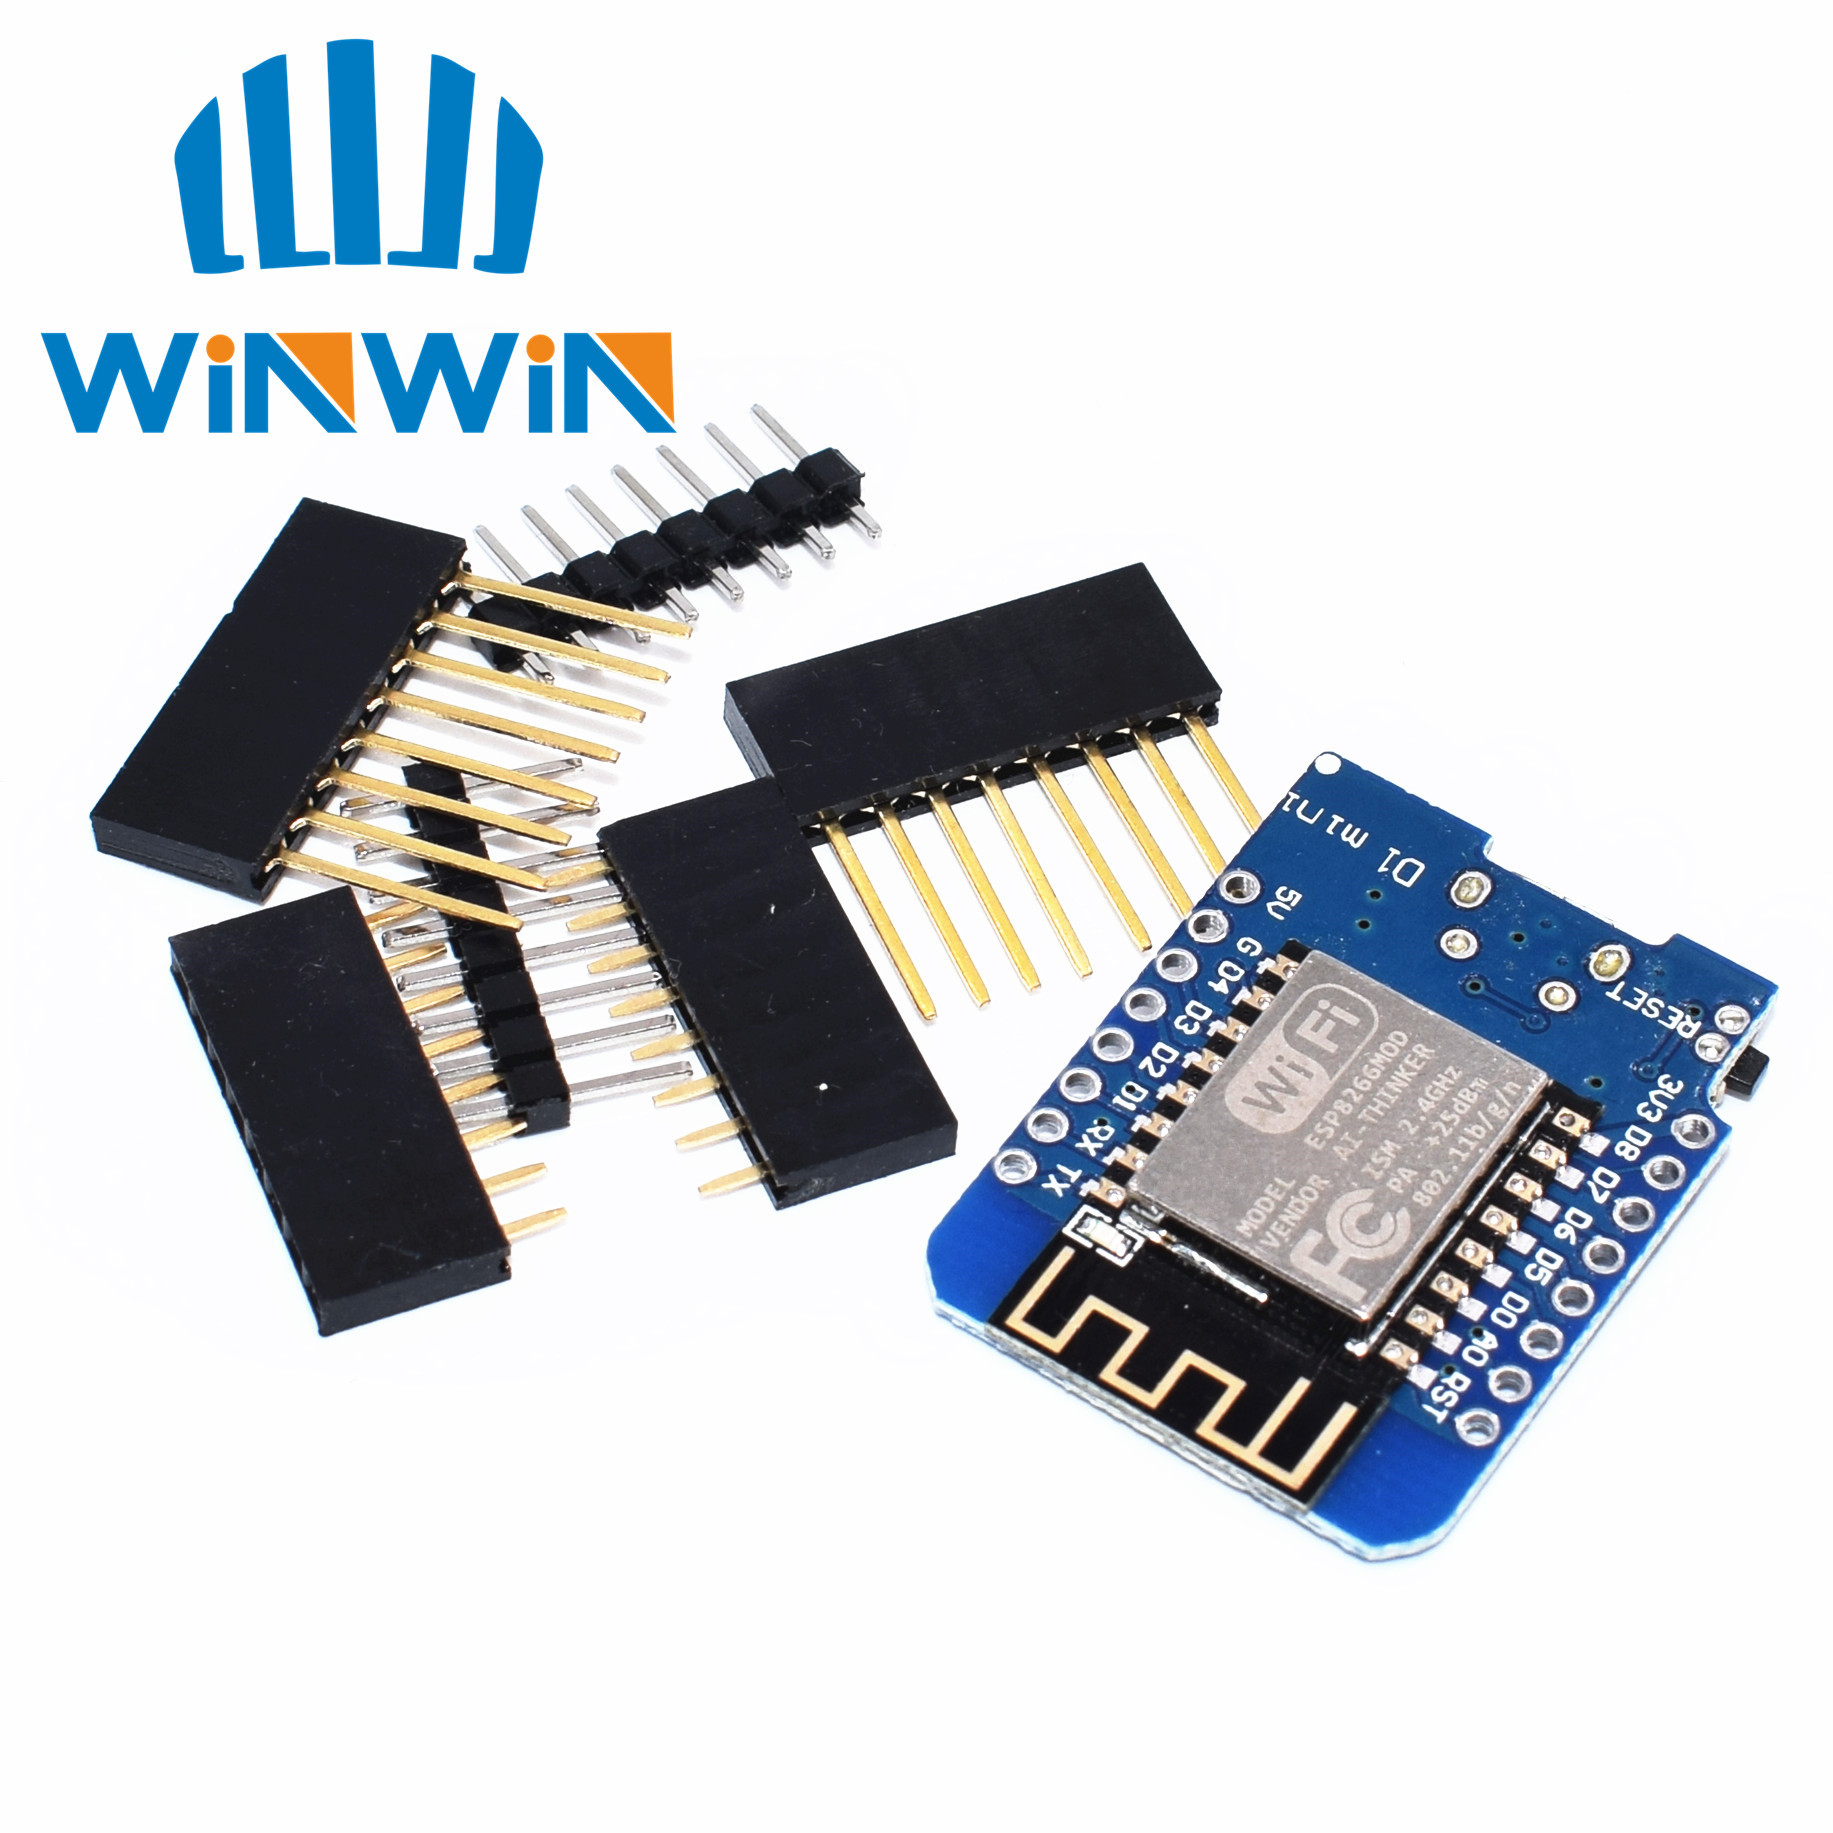 Usb Cable Integrated Circuits Knowledgeable Hwayeh High Quality One Set Uno R3 Ch340g+mega328p Chip 16mhz For Arduino Uno R3 Development Board